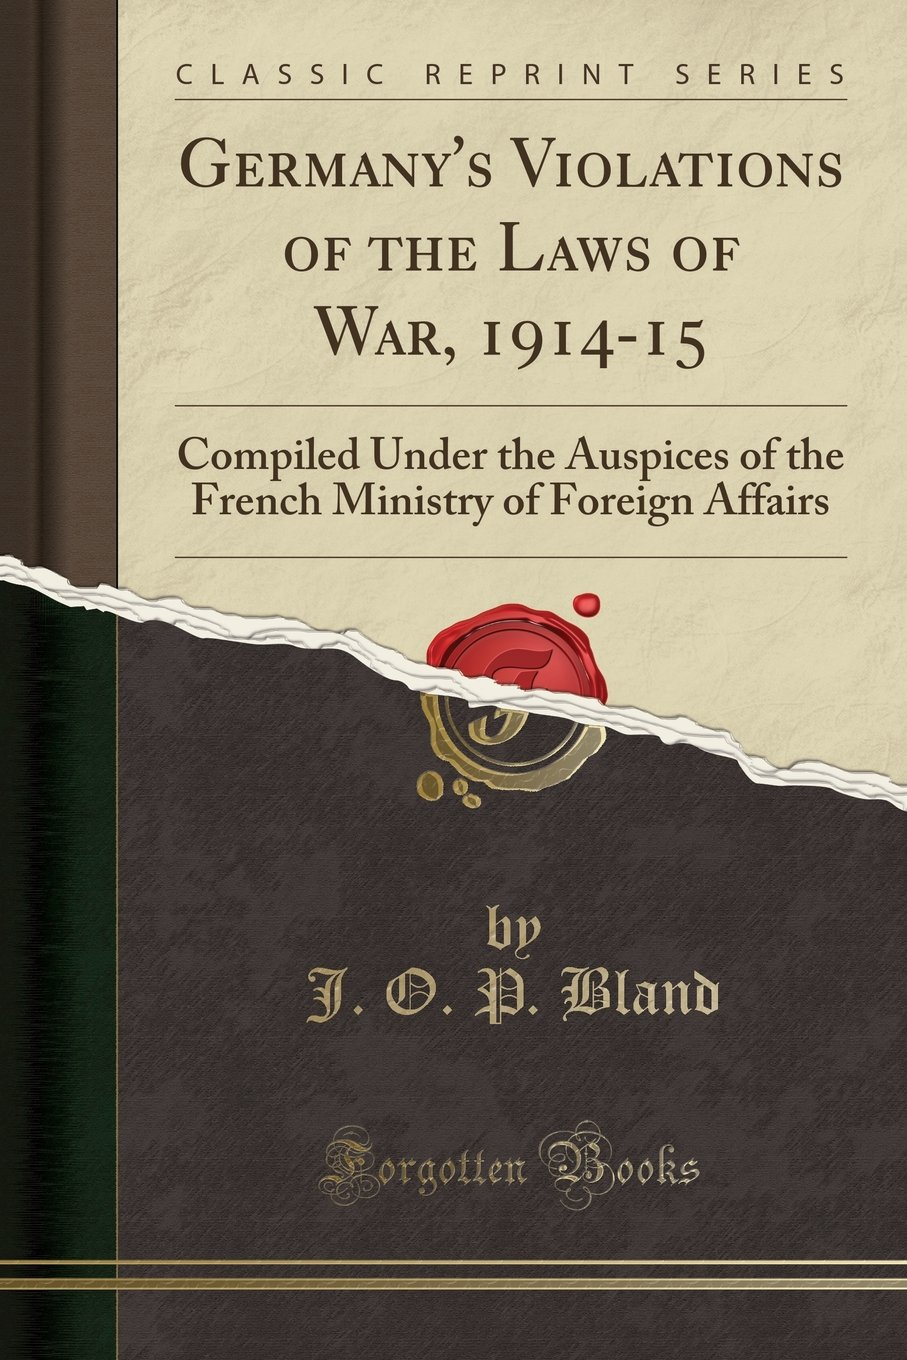 Download Germany's Violations of the Laws of War, 1914-15: Compiled Under the Auspices of the French Ministry of Foreign Affairs (Classic Reprint) pdf